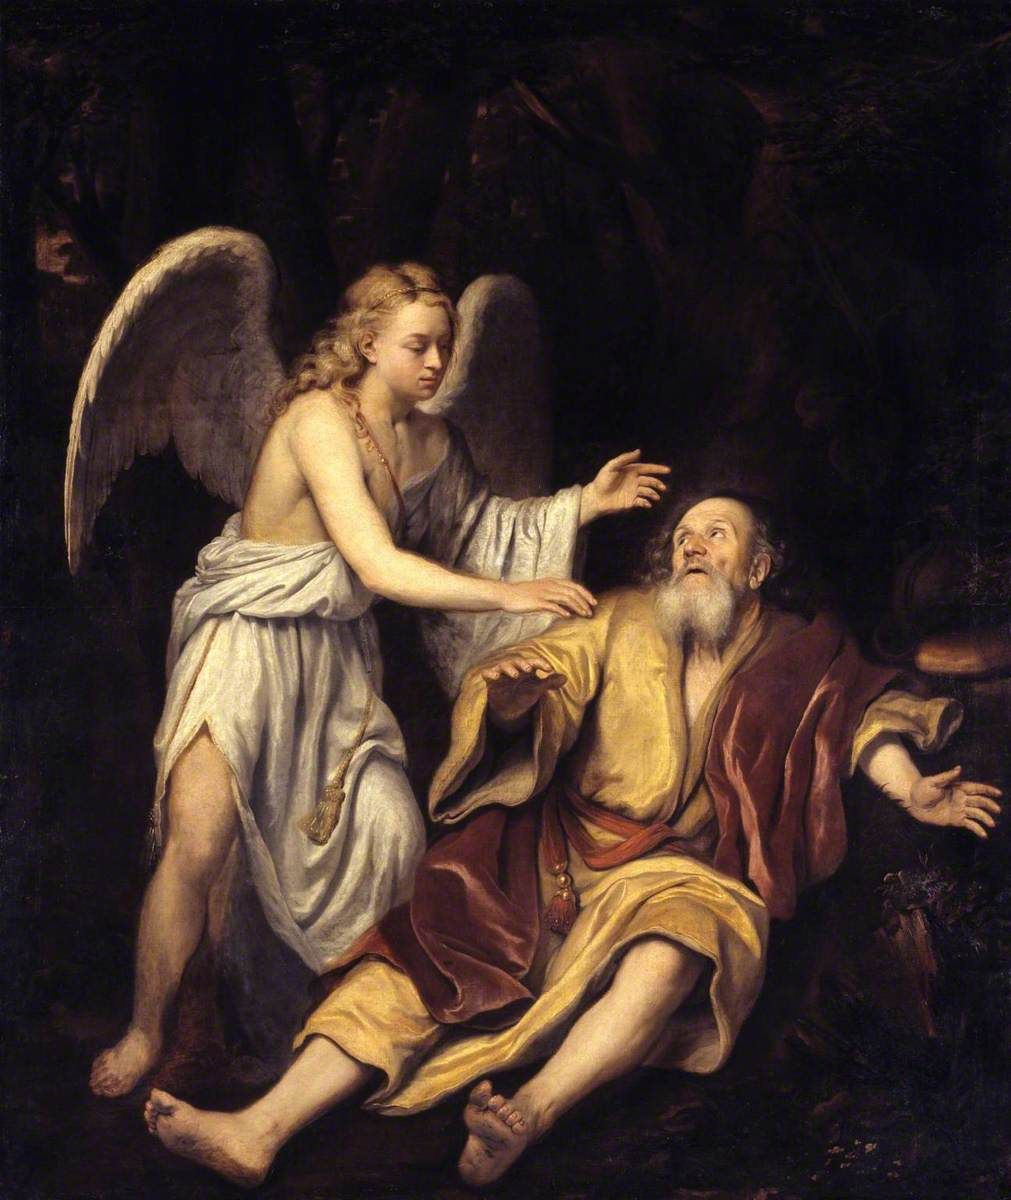 Elijah and the Angel by Godfrey Kneller (17th Century) - Public Domain Bible Painting